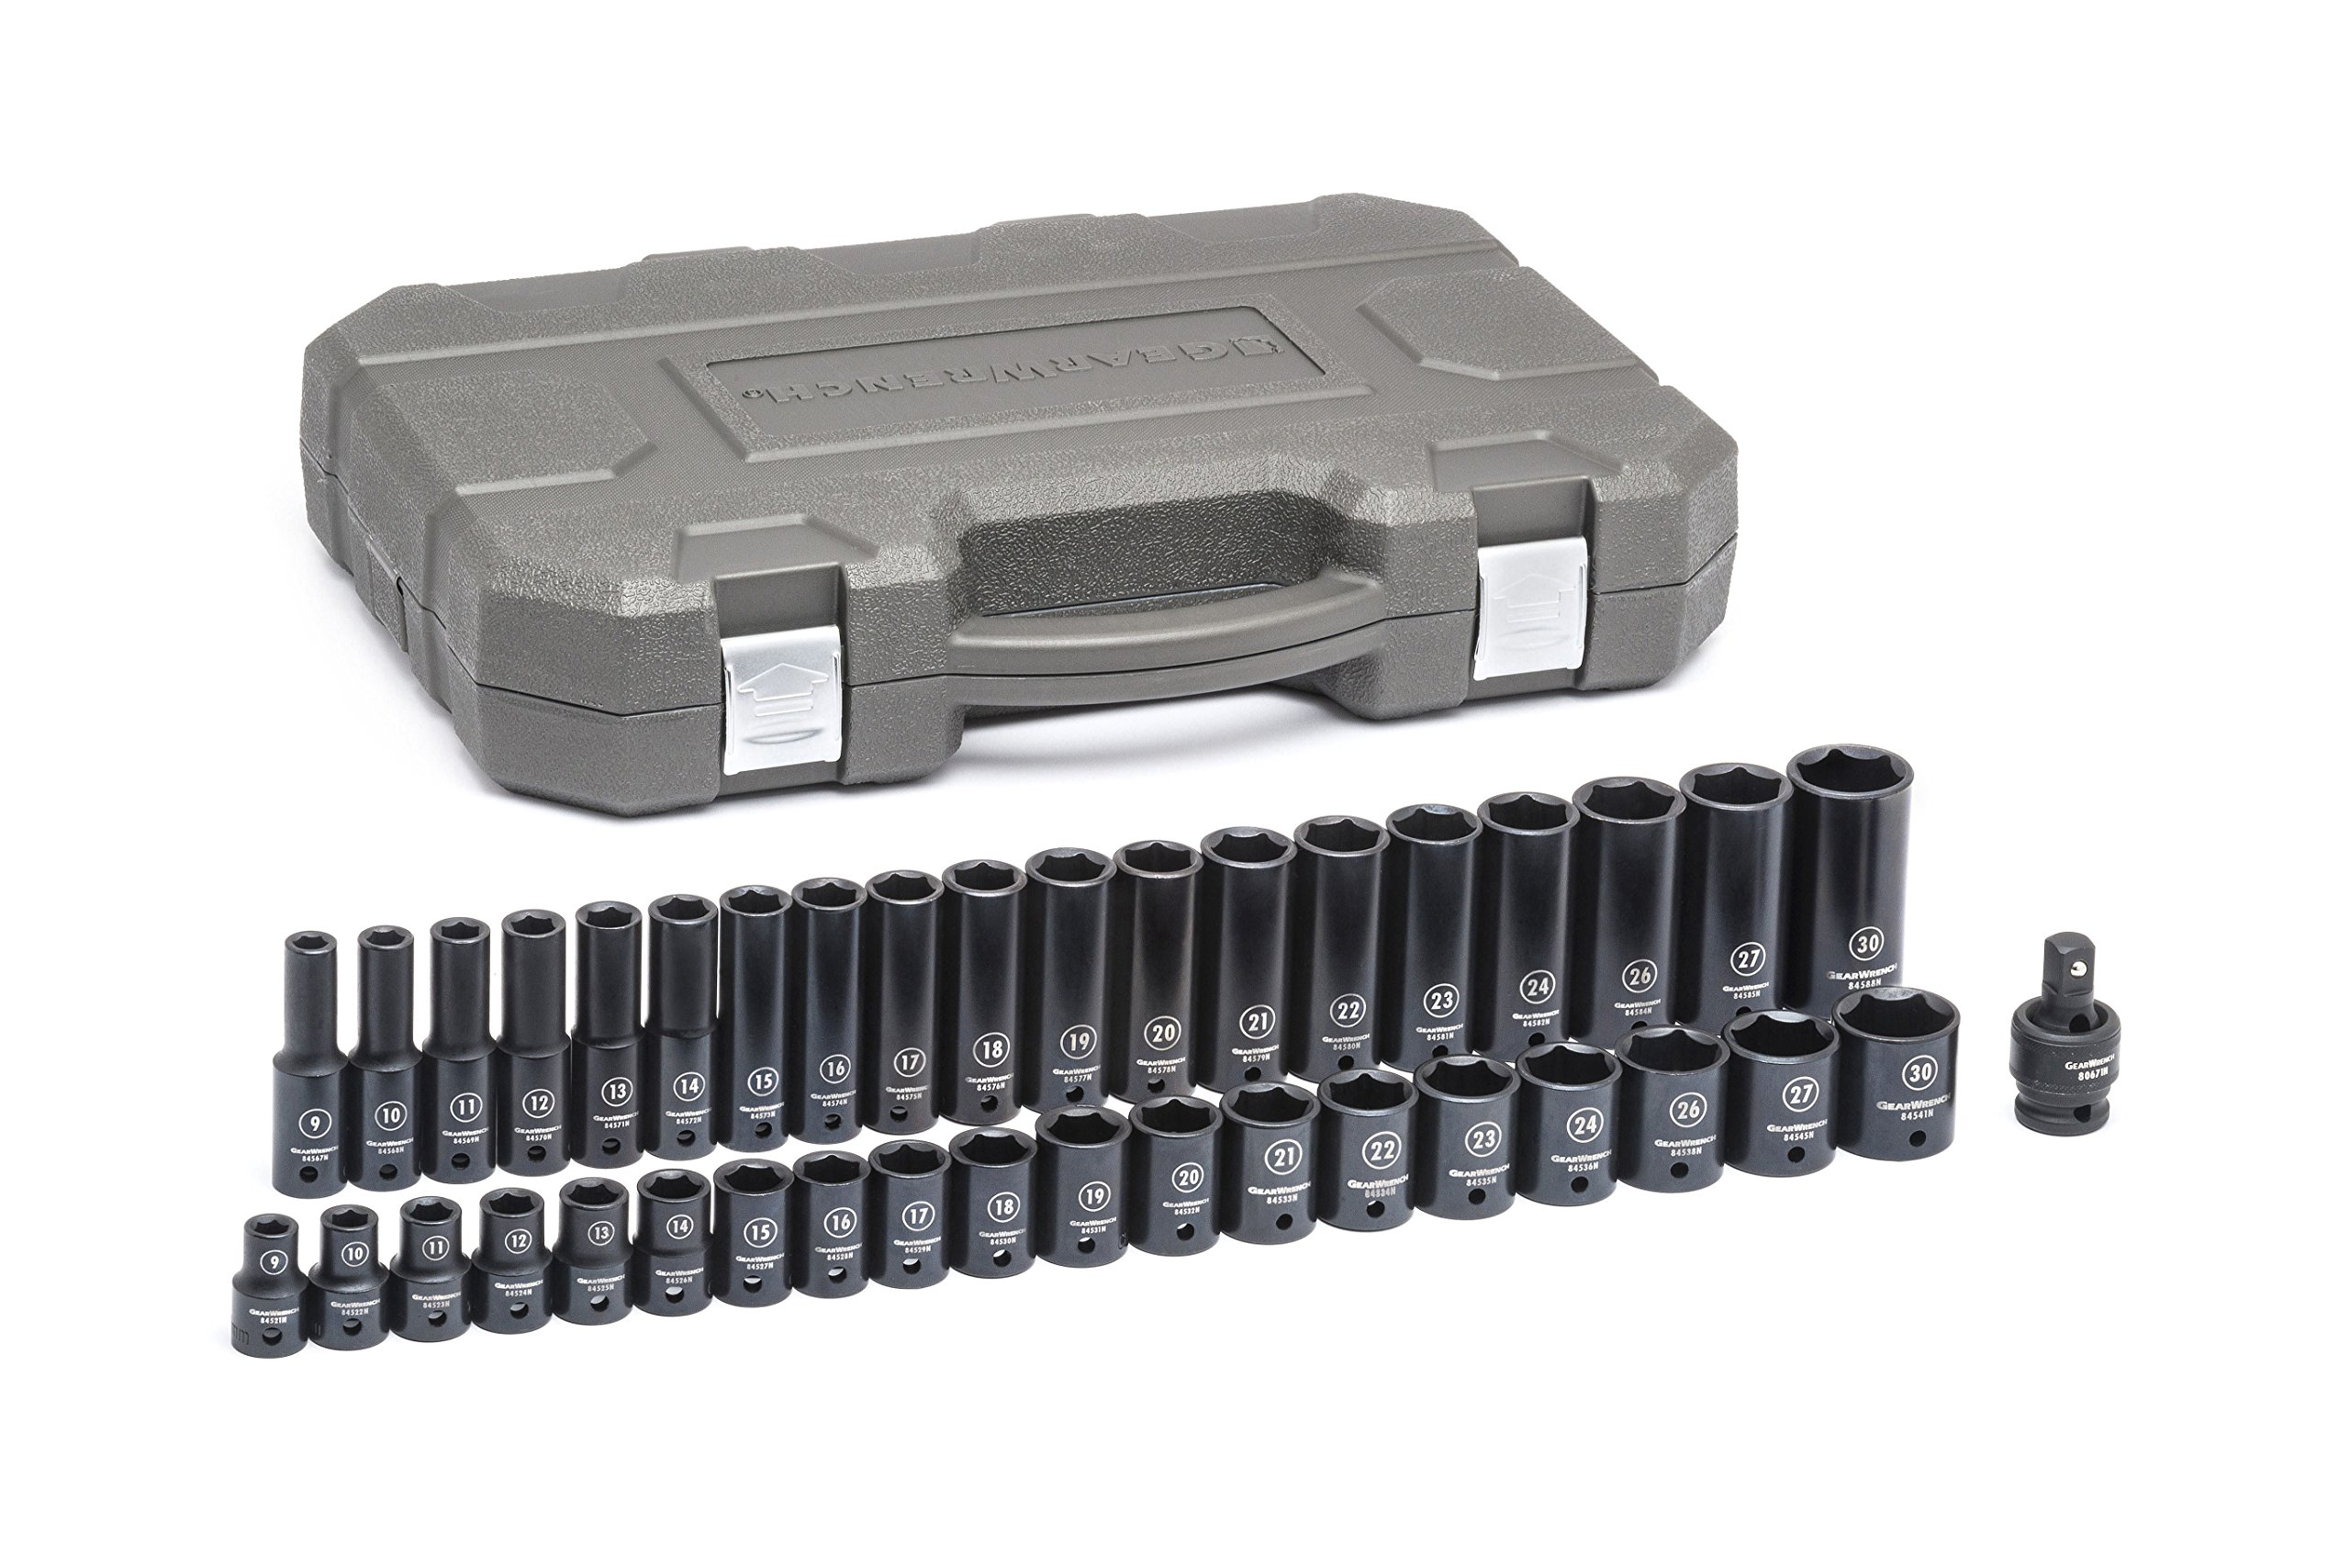 GEARWRENCH 39 Pc. 1/2'' Drive 6 Point Standard & Deep Impact Metric Socket Set - 84948N by GearWrench